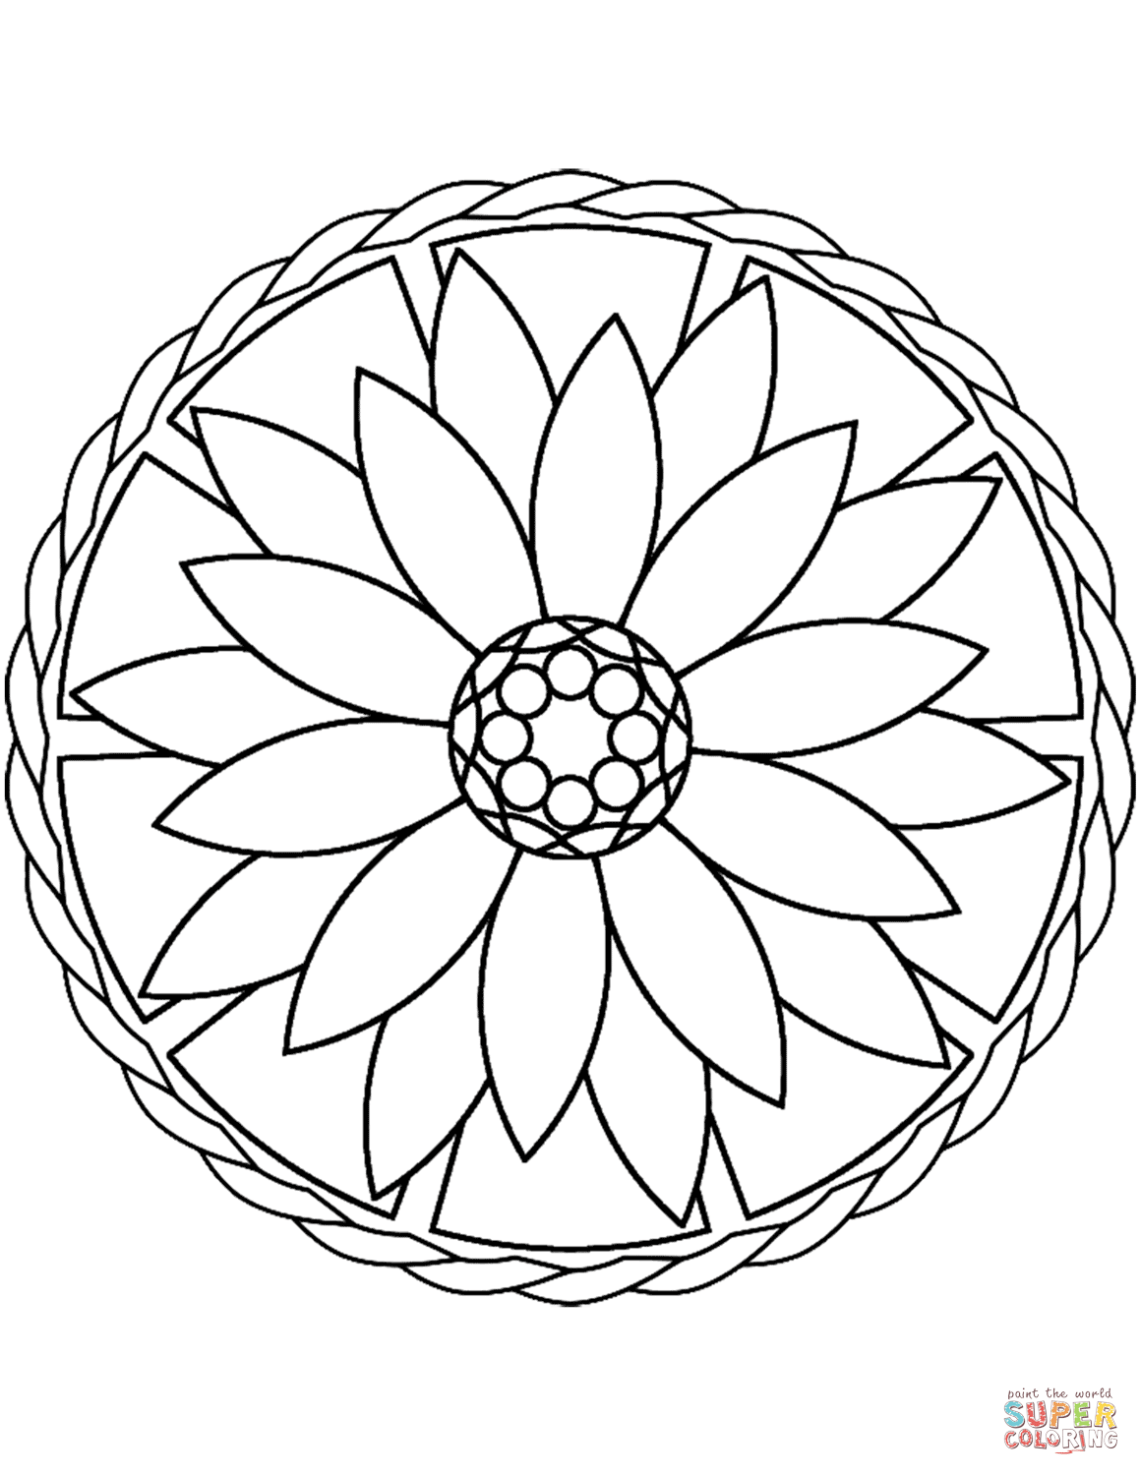 Simple Mandala with Flower coloring page | Free Printable ... | free printable mandala coloring pages for adults easy